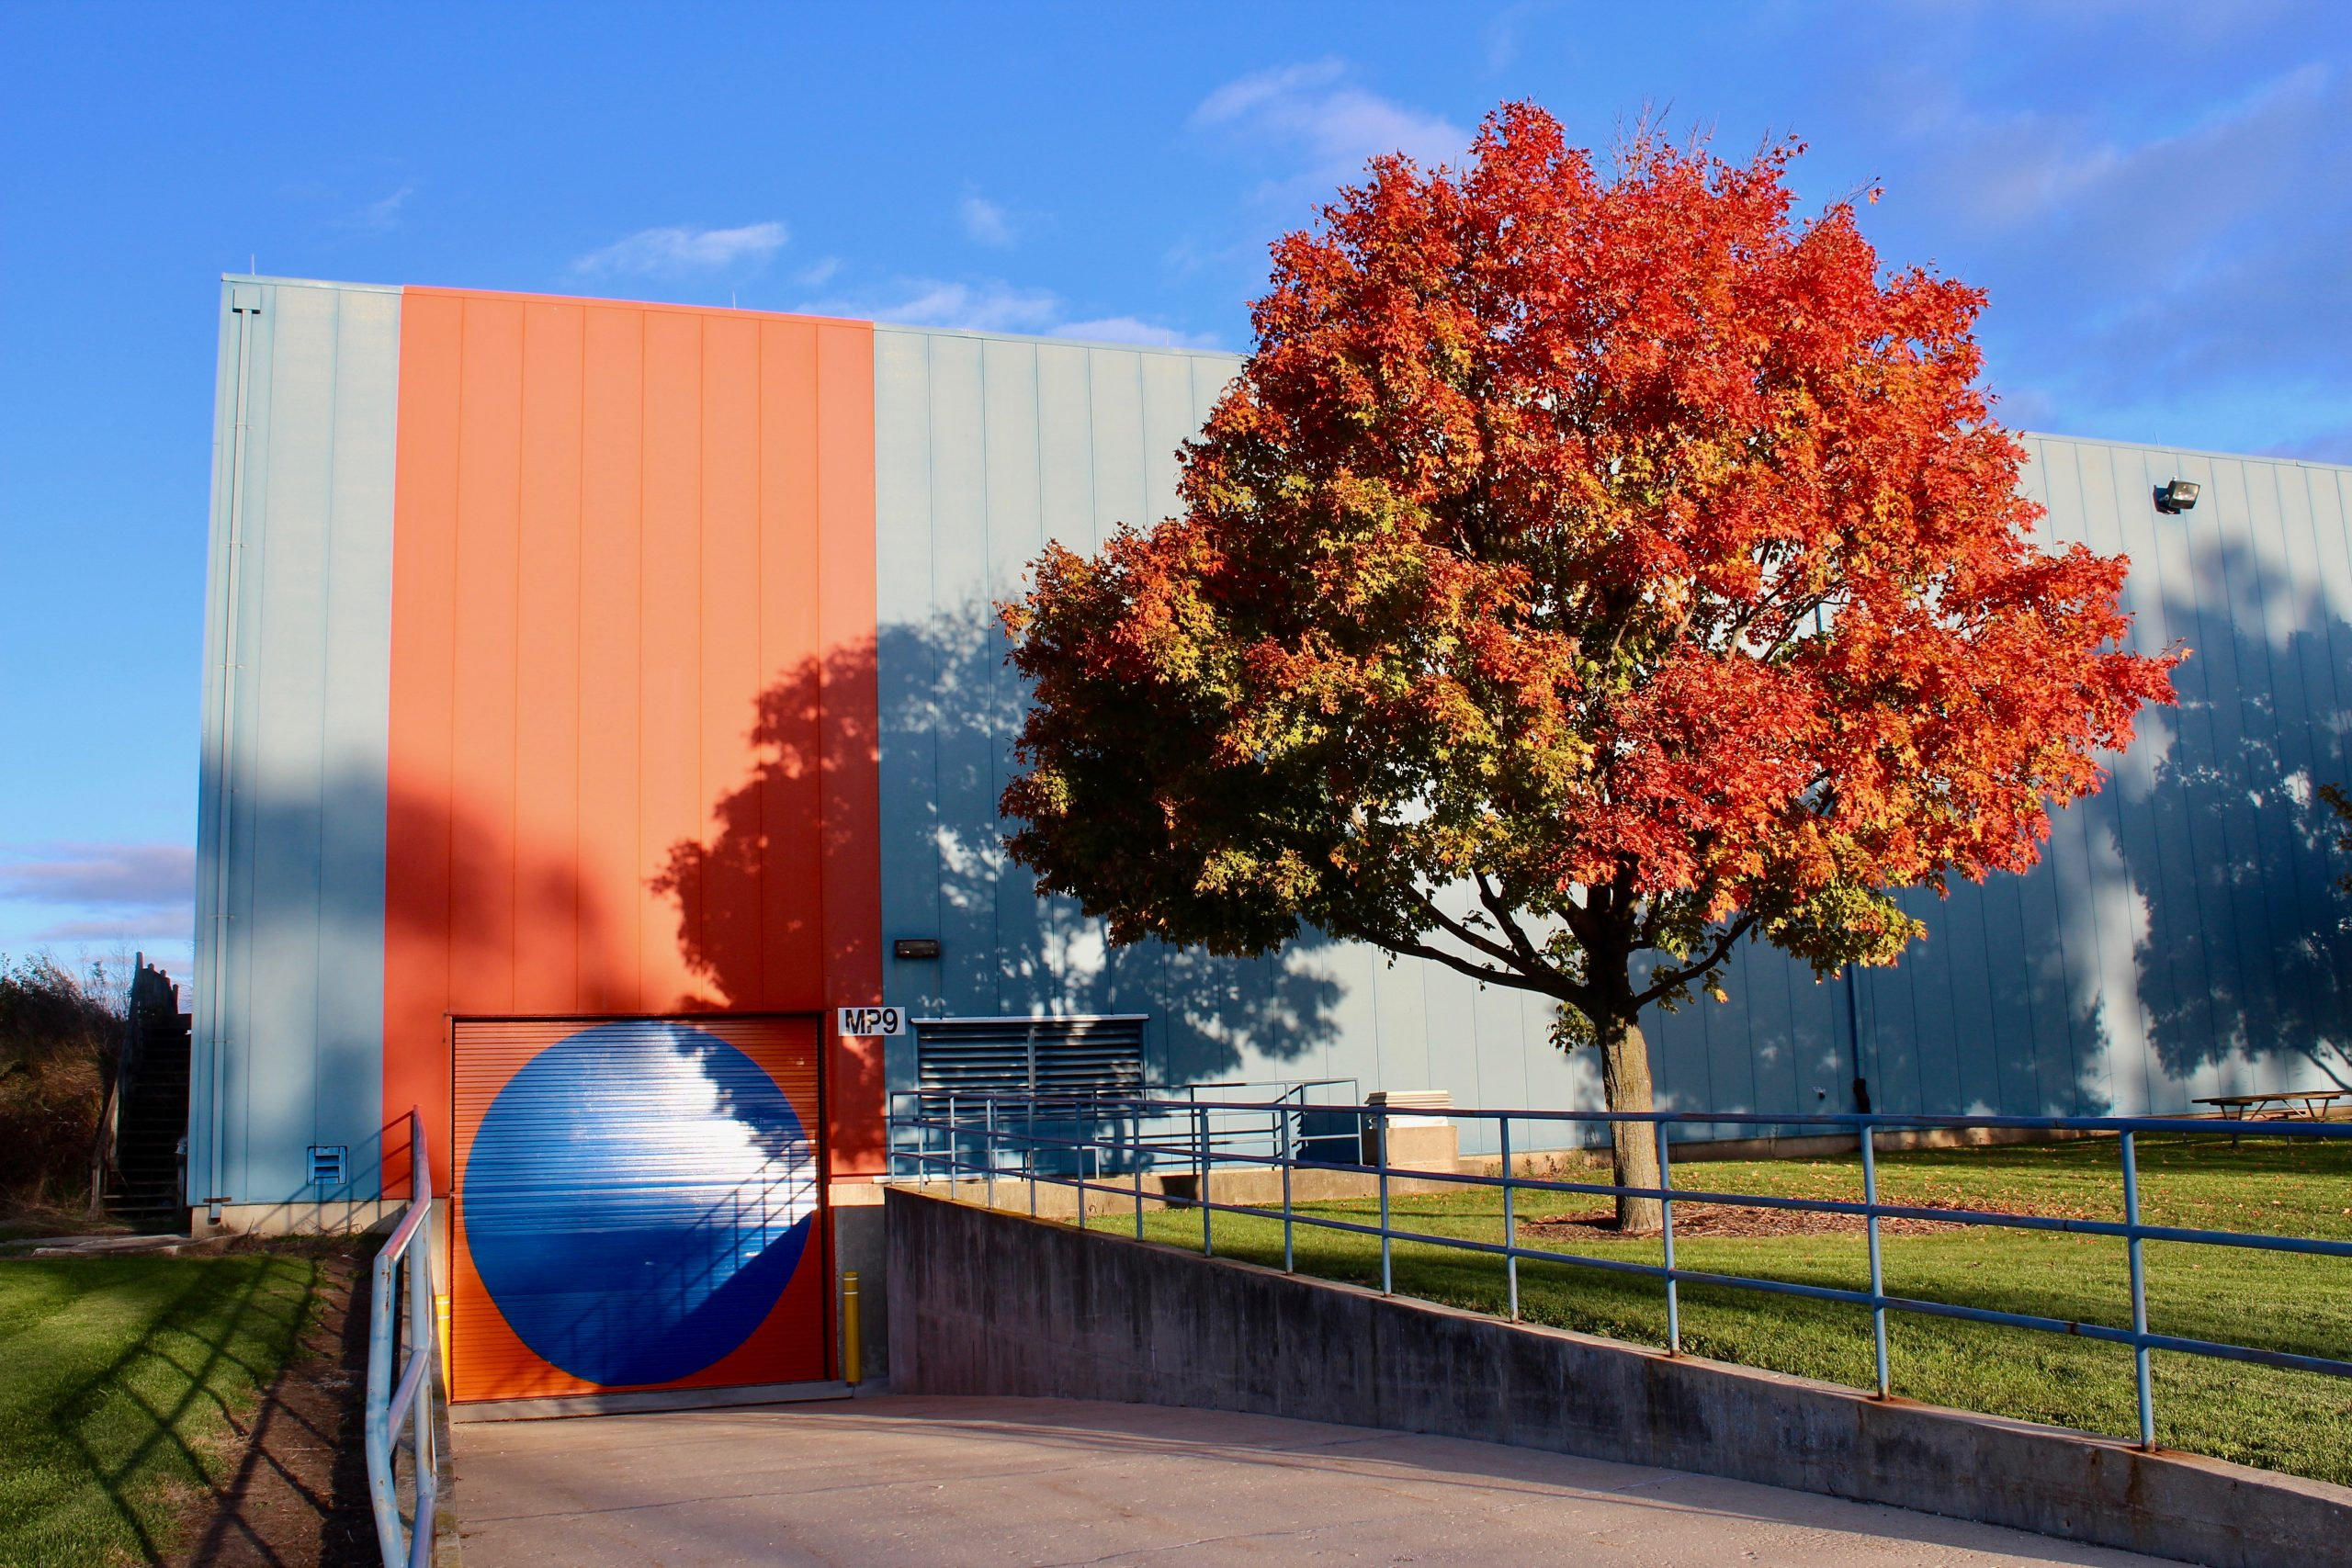 This beautiful Fermilab autumn tree was captured on Oct. 16, 2018. nature, landscape, plant, tree, fall, autumn, building Photo: Georgia Schwender